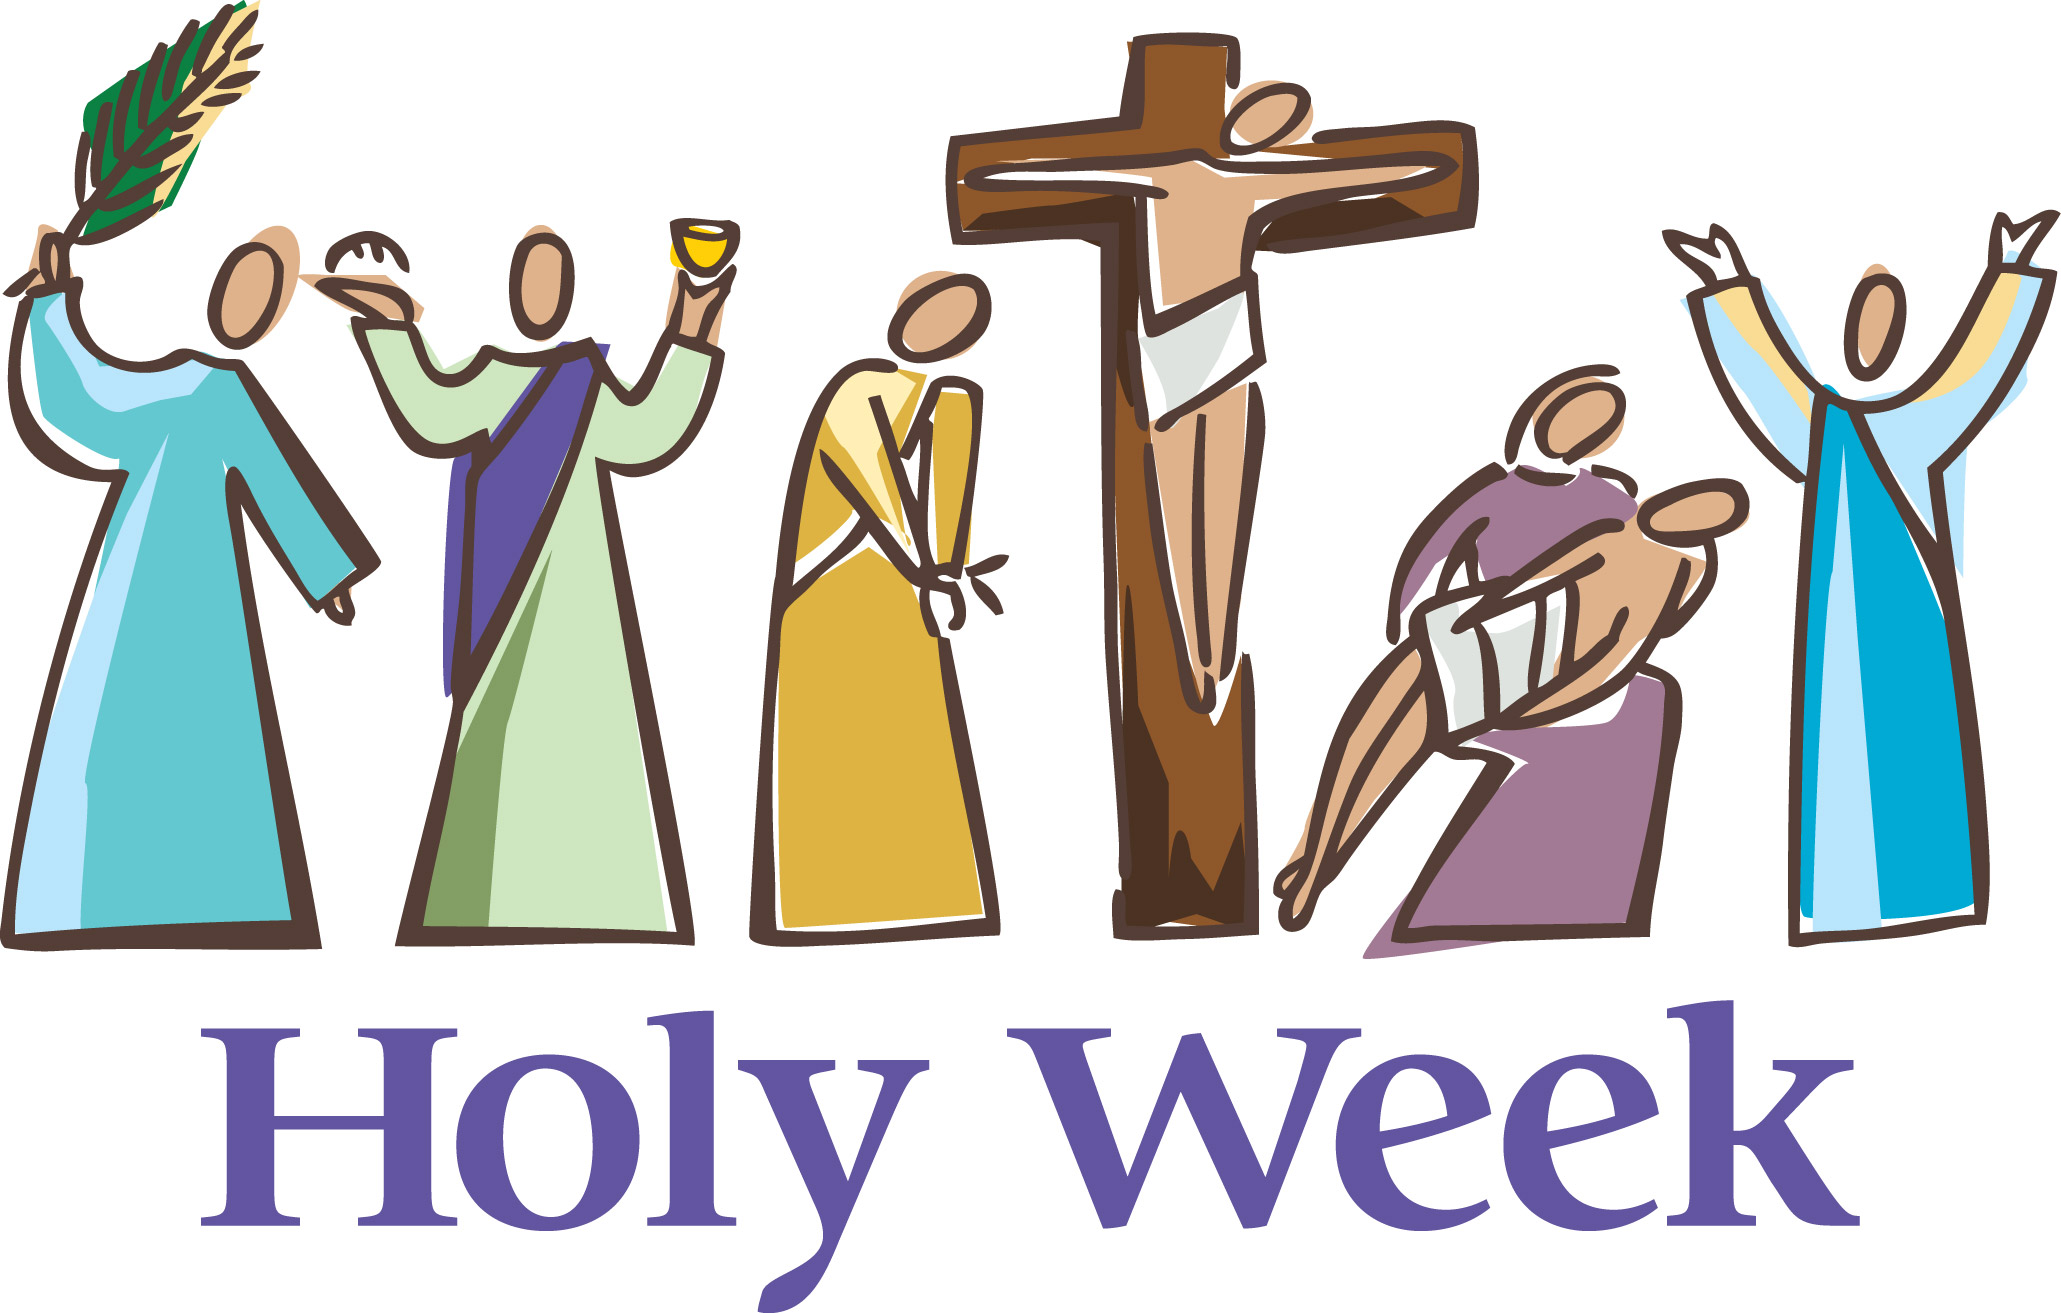 image transparent download Holy week at st. Maundy clipart spiritual wellness.